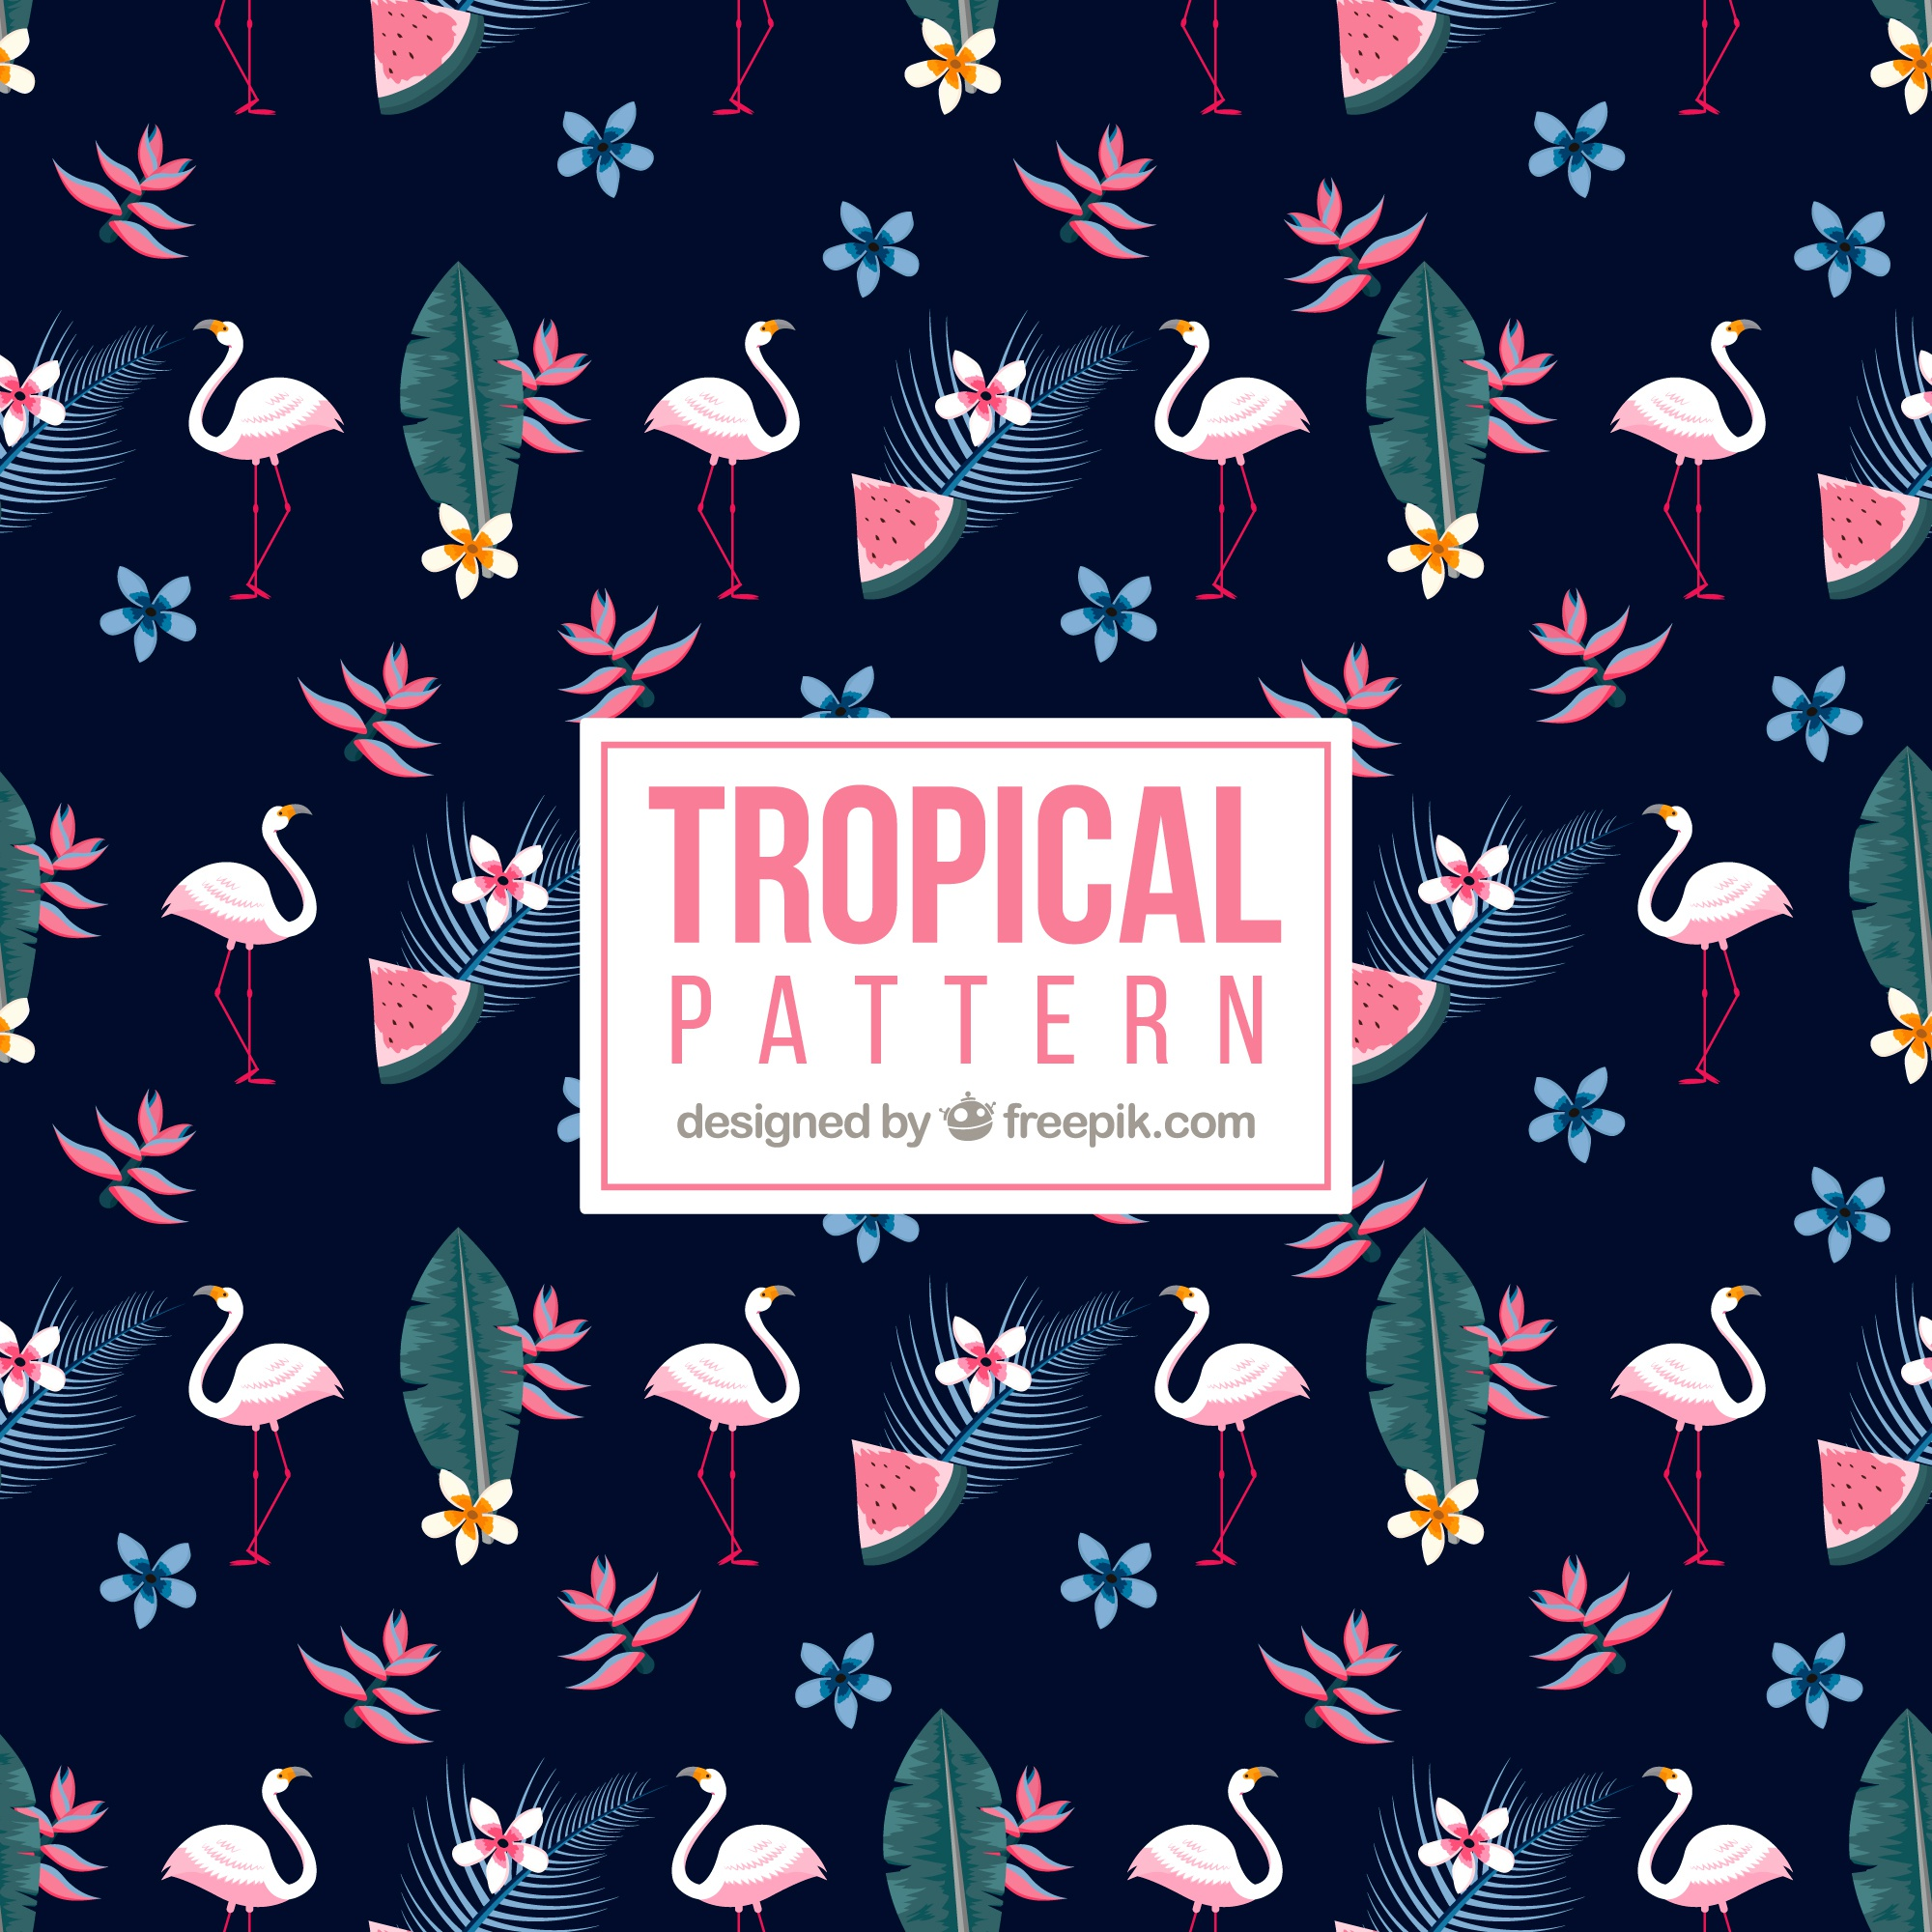 Tropical pattern with flamingos and plants